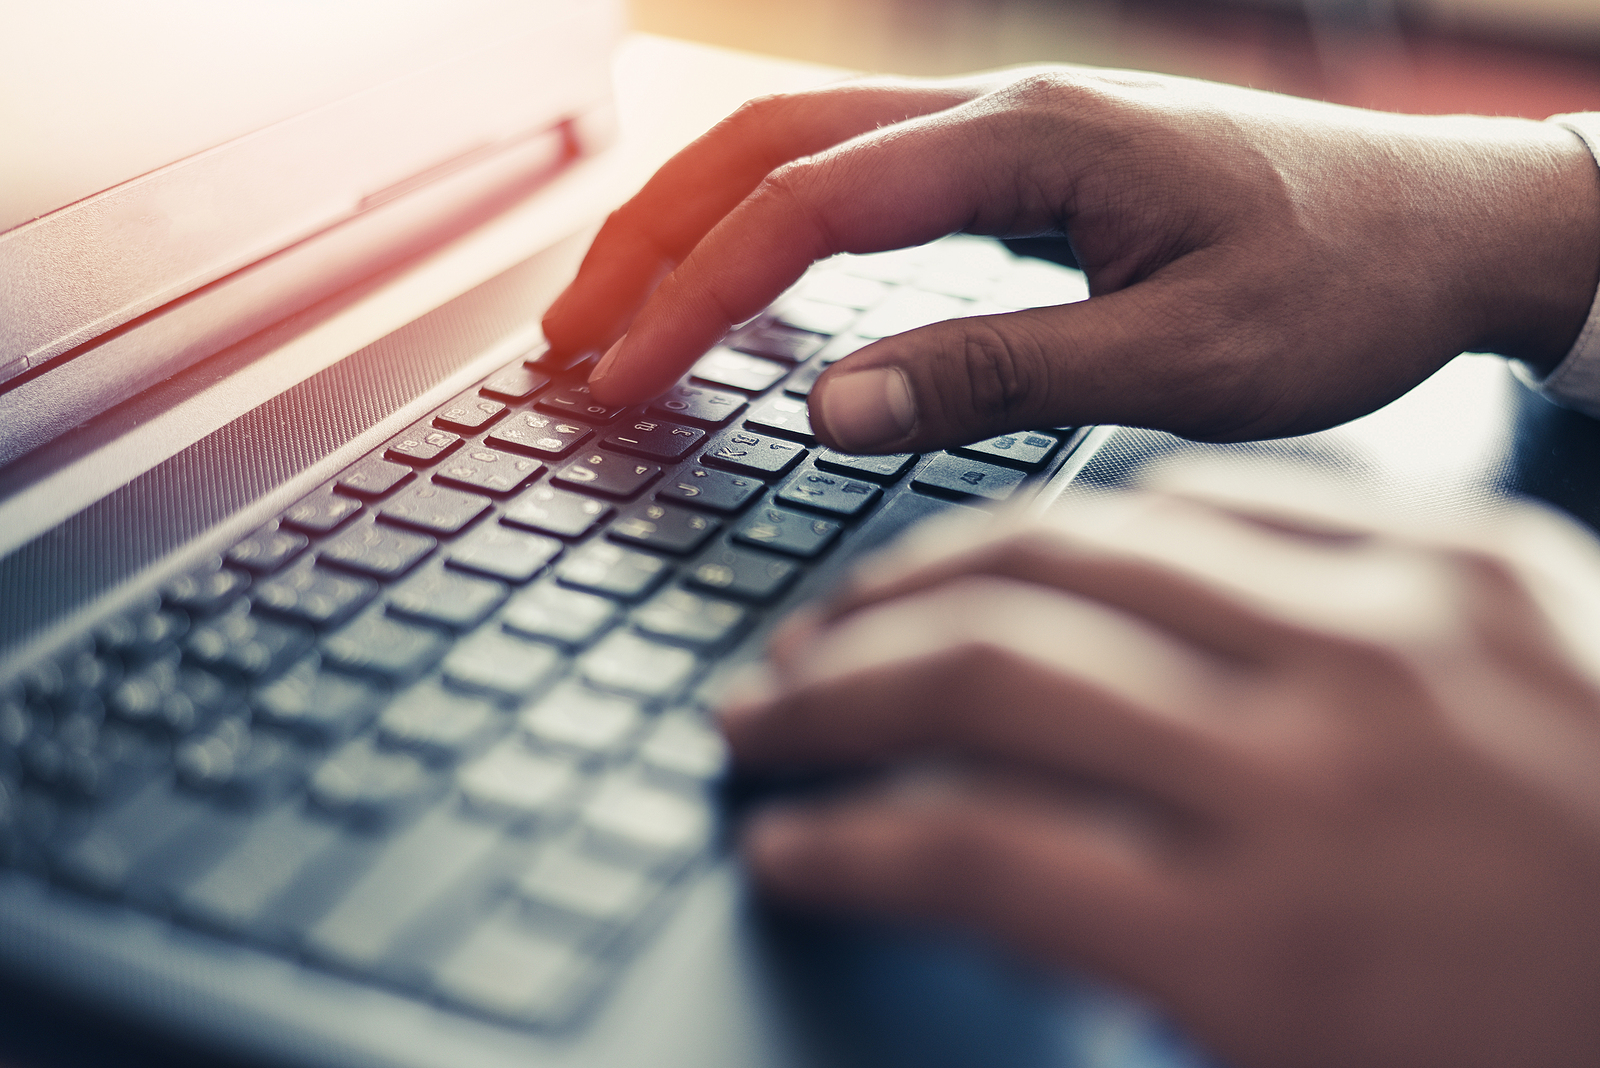 Business man typing on computer. Online therapy in Michigan is a great way to get accessible services. Our online therapists would love to work with you from the comfort of your space. When you're ready, reach out to Introspective counseling for online therapy in Detroit, MI today!